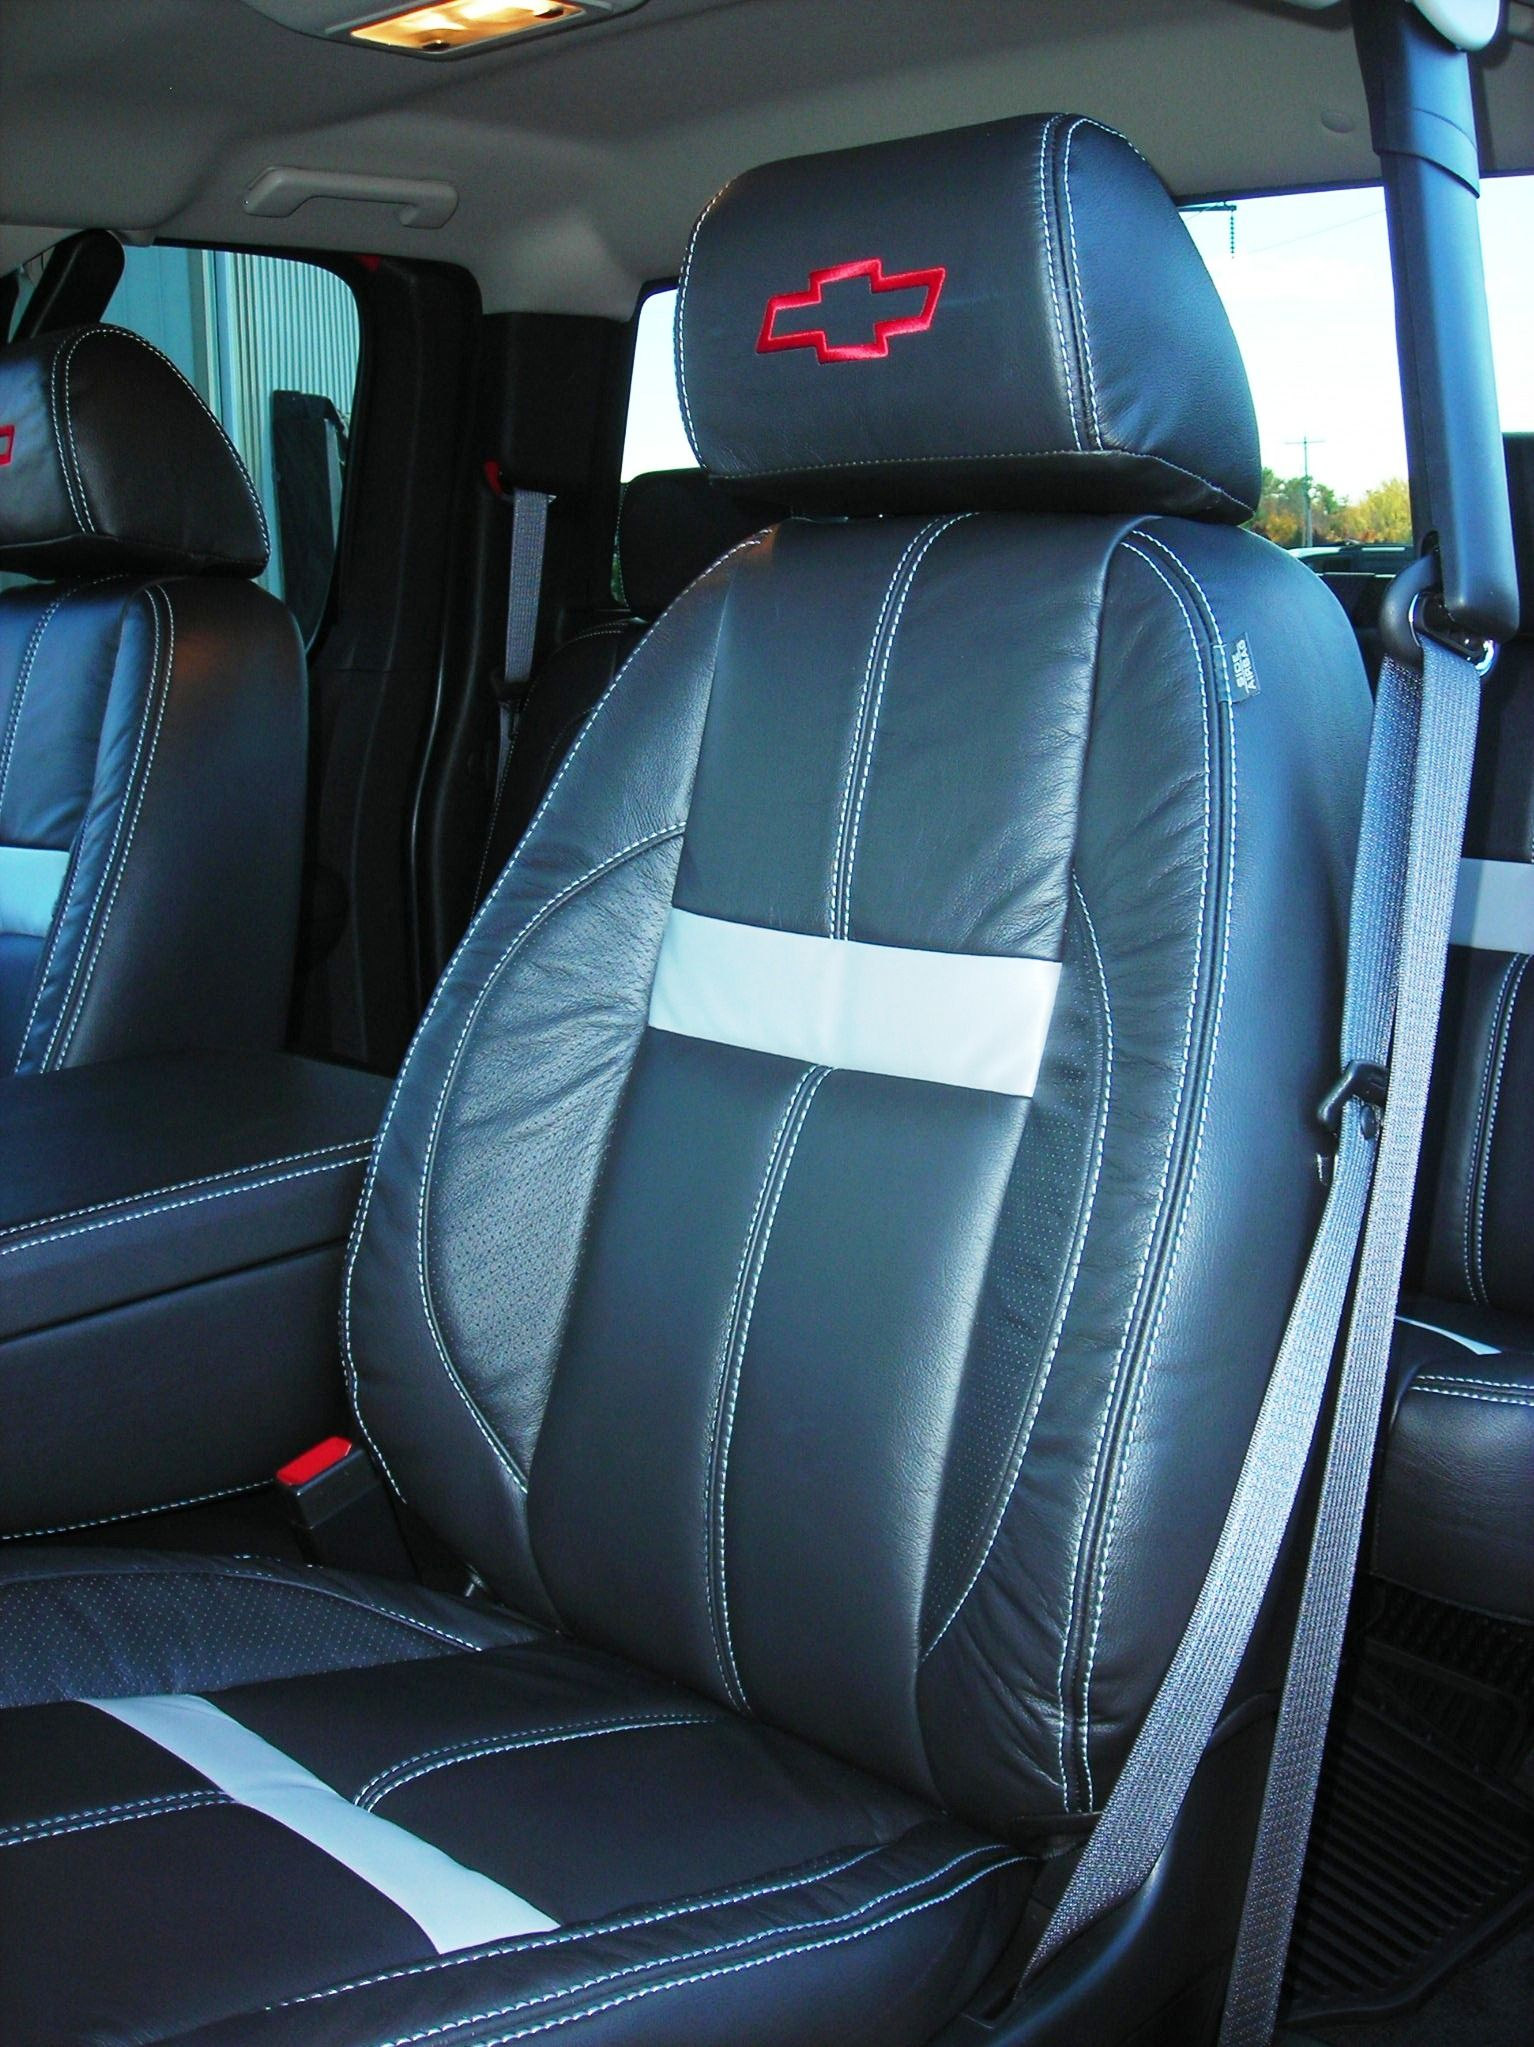 Custom Automotive Leather Interior With Silver Accents Chevy Ipad Mini Dash 2003 Silverado Package Clean Seats